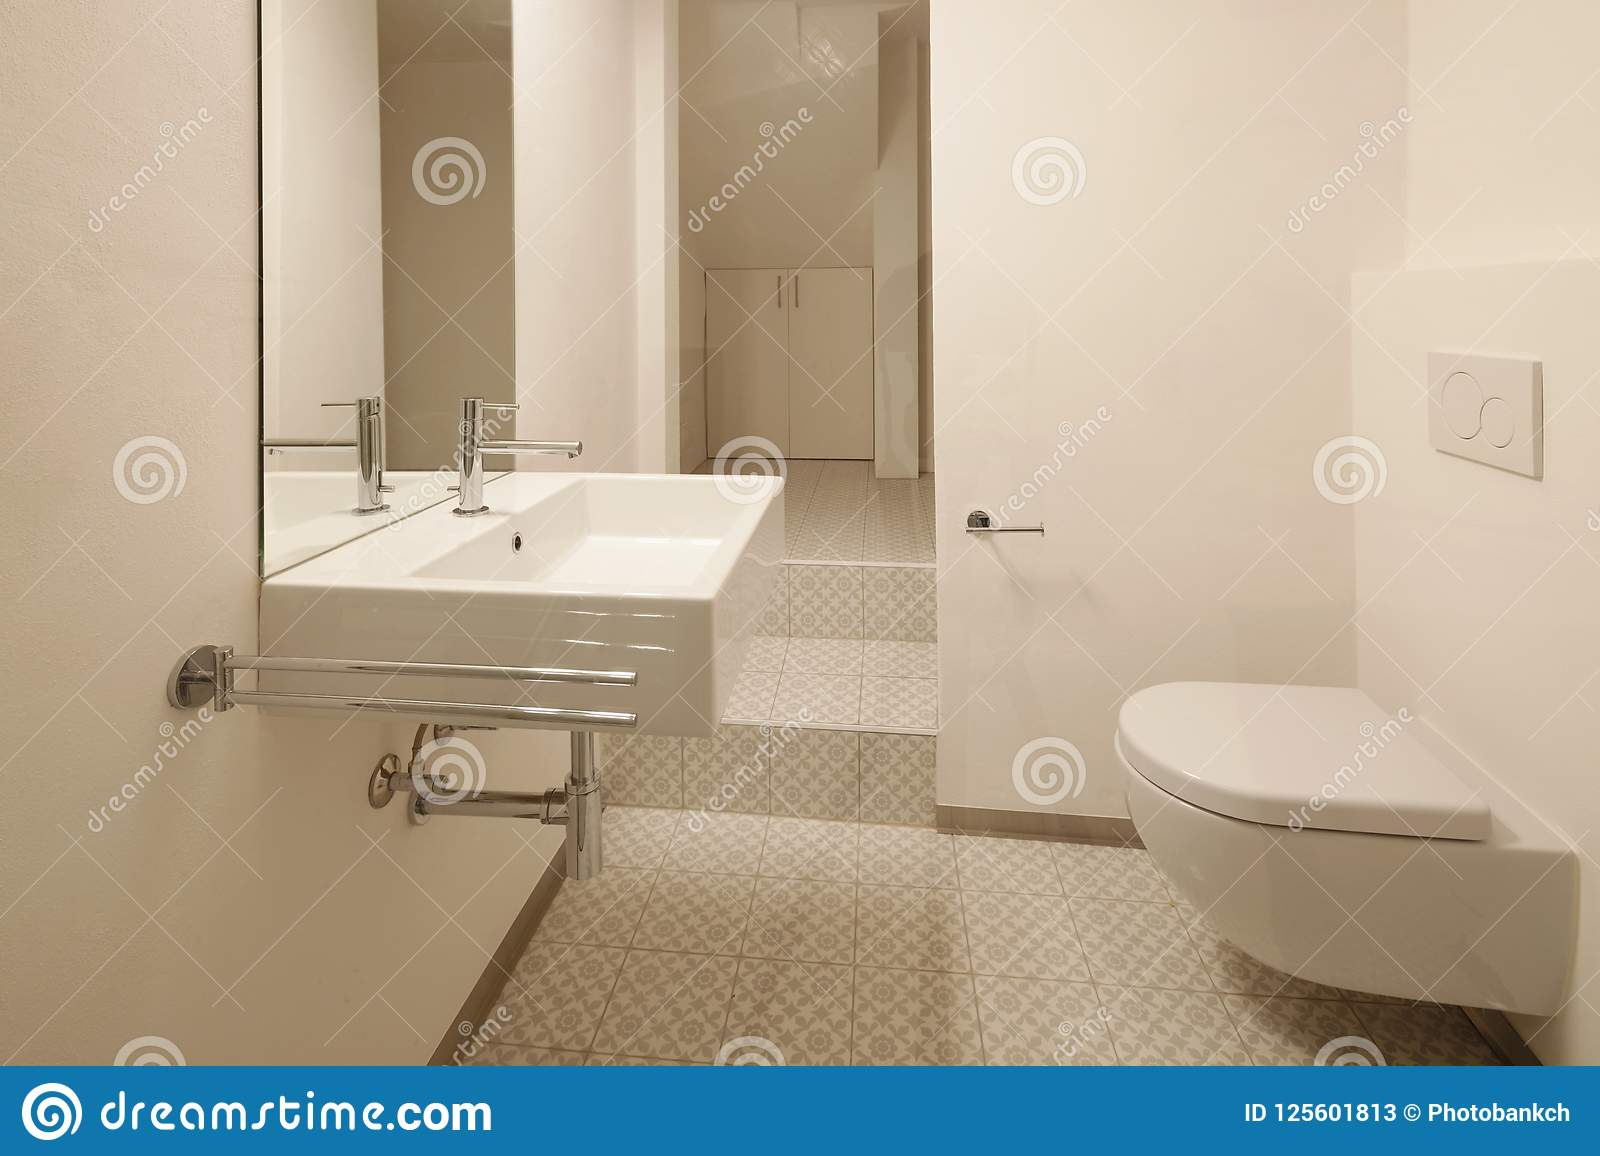 Modern Bathroom With Floor Tiles Stock Image - Image of building ...